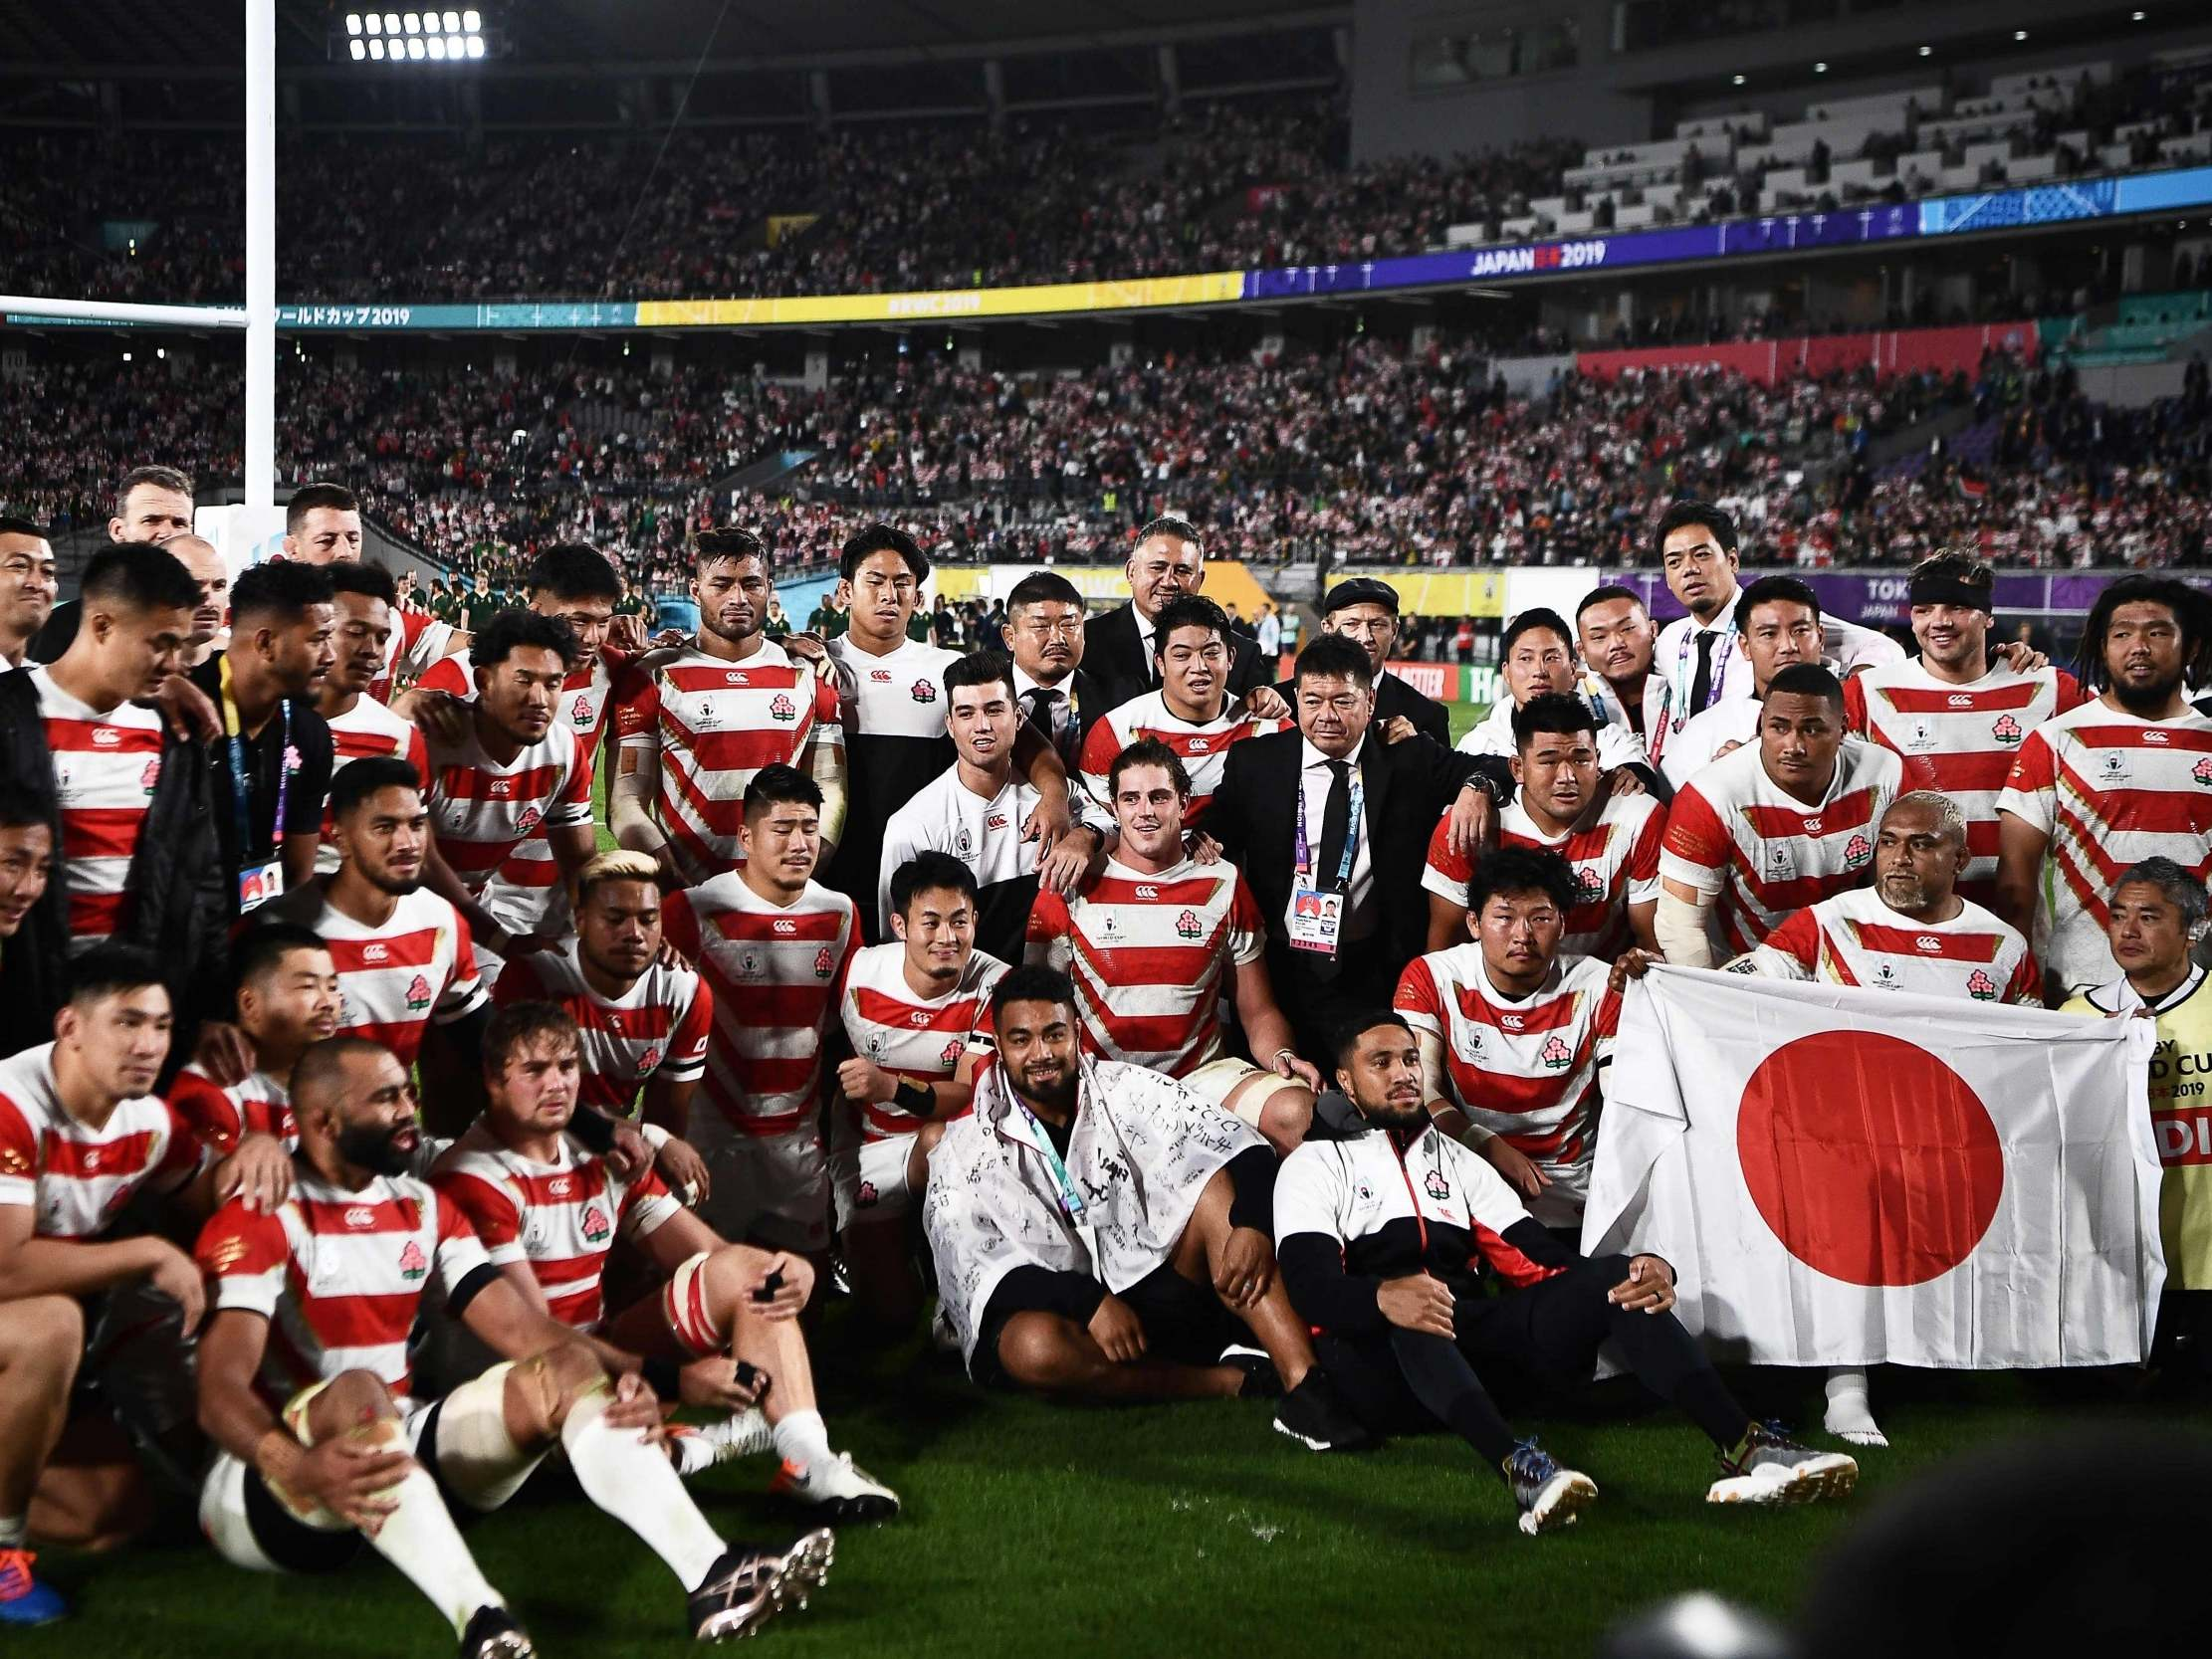 Rugby World Cup 2019: Japan shaken awake by South Africa – but this might just be the start of something